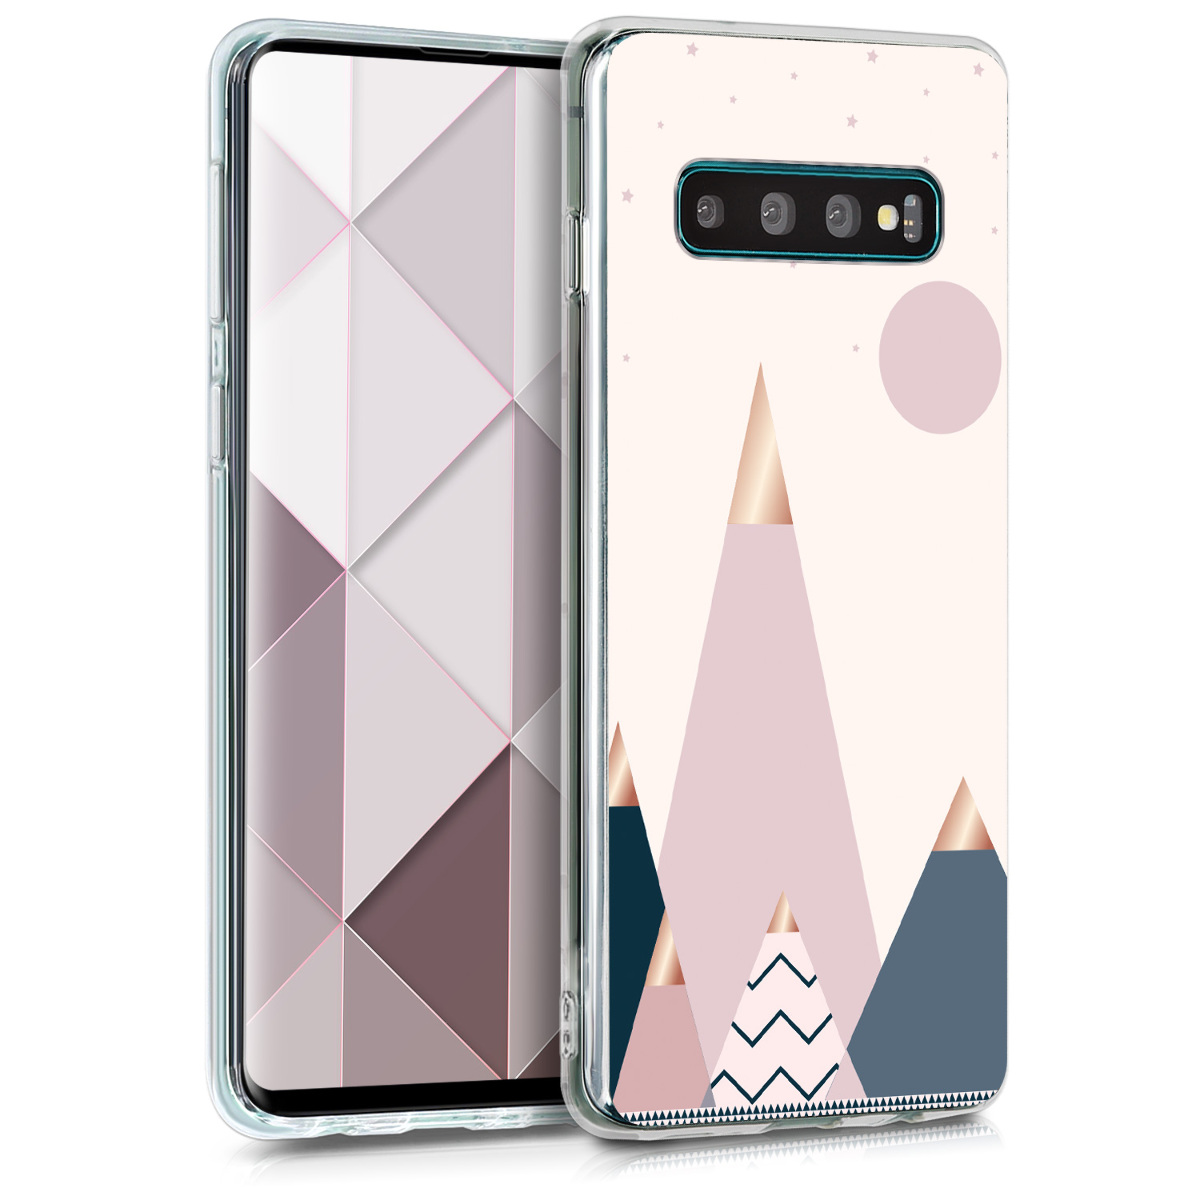 KW Θήκη Σιλικόνης Samsung Galaxy S10 - Rose Gold / Blue / Light Pink (47449.23)